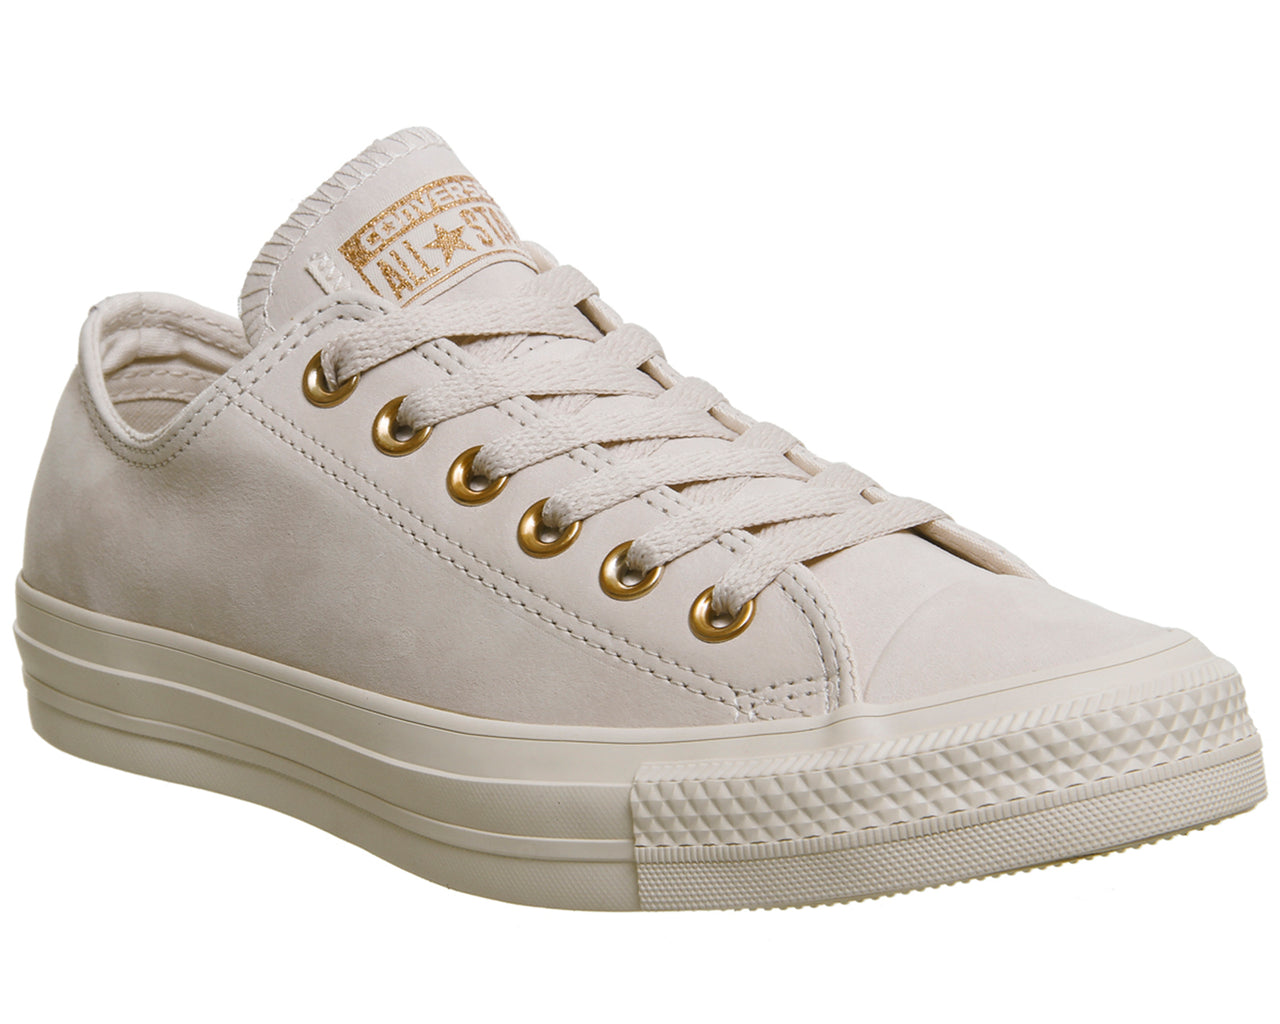 47931e0ca2d364 Womens Converse All Star Low Leather Whisper Pink Rose Gold – OFFCUTS SHOES  by OFFICE